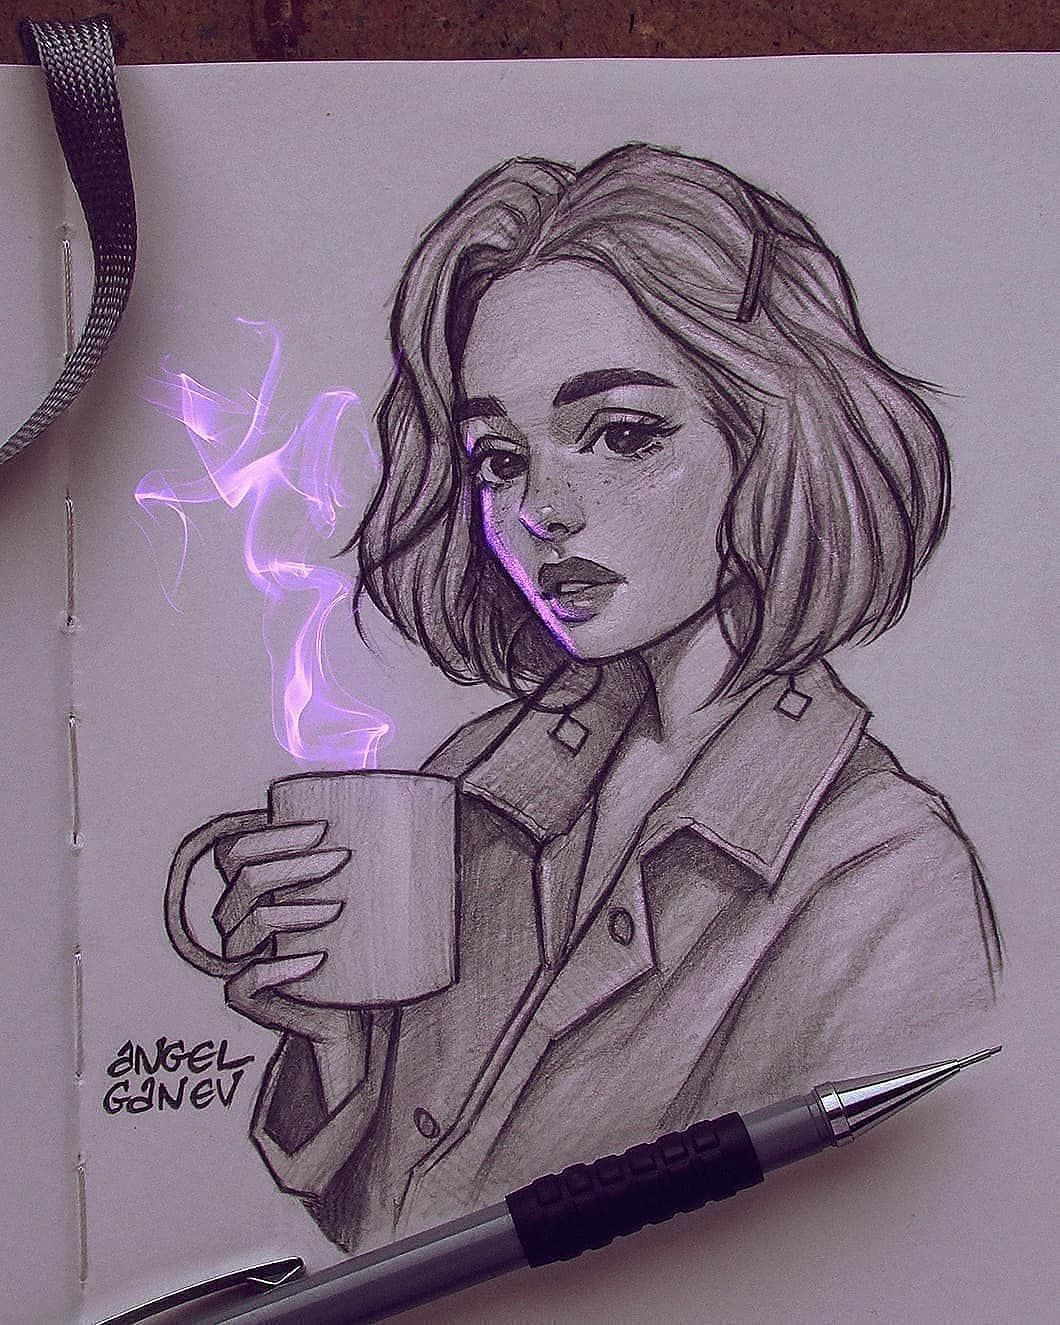 Incredible Sketches With Glowing Effect Follow Art Dailydose For More Art And Use O Art Sketches Art Drawings Sketches Pencil Art Drawings Sketches Creative